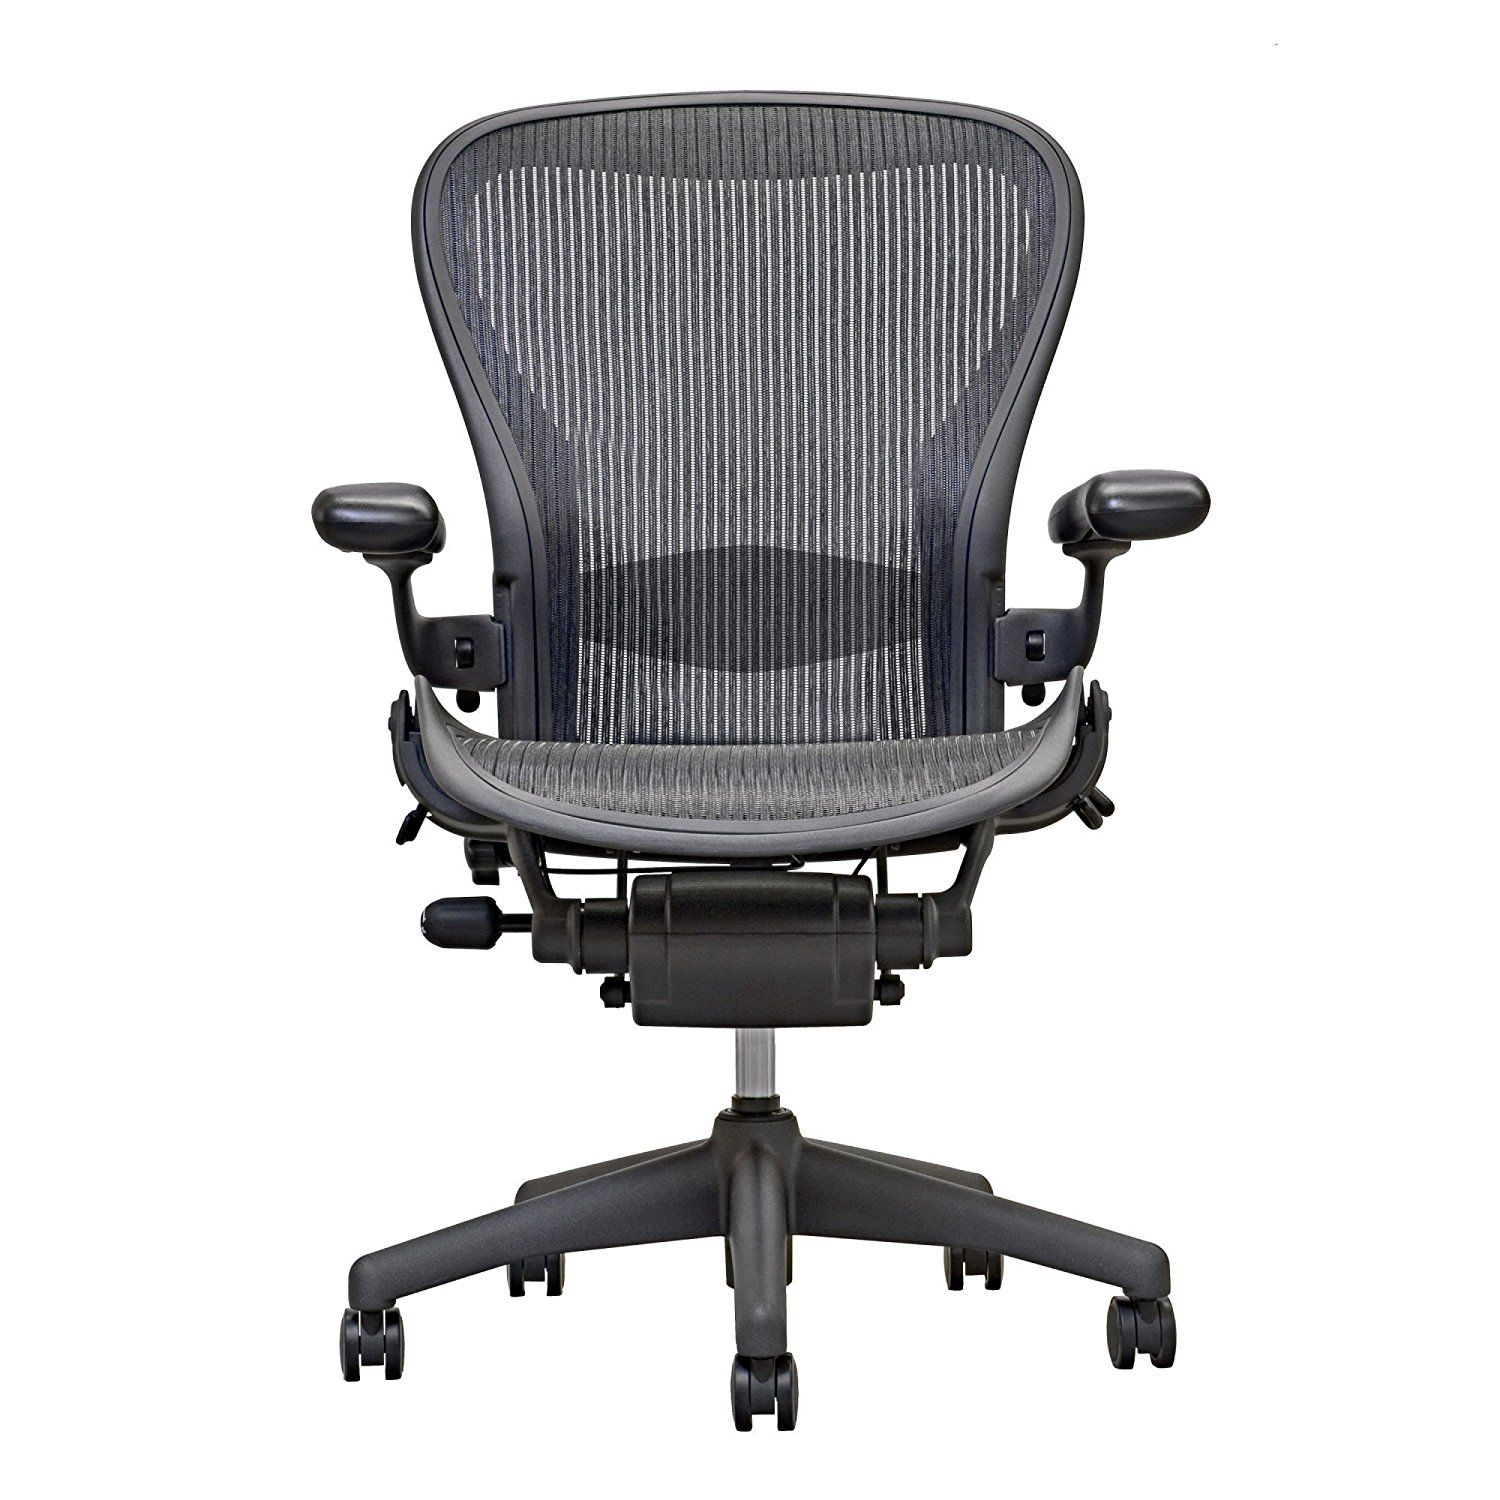 6752a3a8ae76 Amazon.com  Herman Miller Aeron Chair -Open Box -Size B Fully Loaded -  Hardwood Floor Caster  Kitchen   Dining